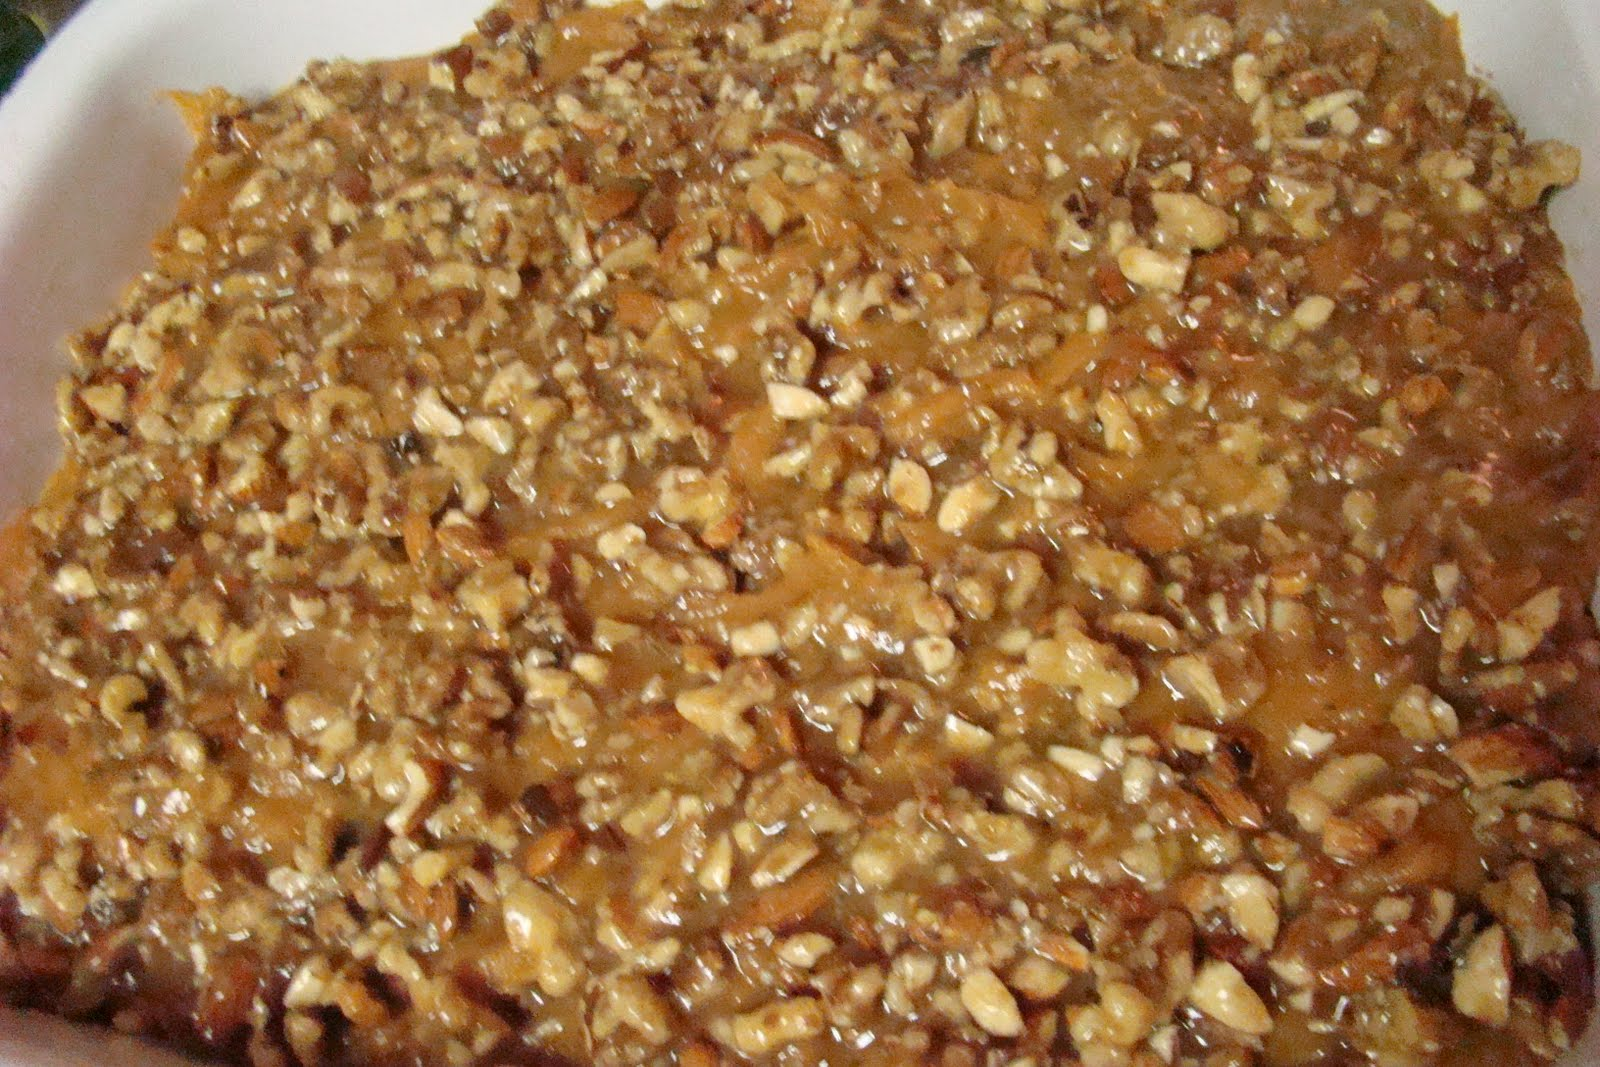 ... Recipes Collection: Maple/ Almond-Pecan glazed Sweet Potato Casserole